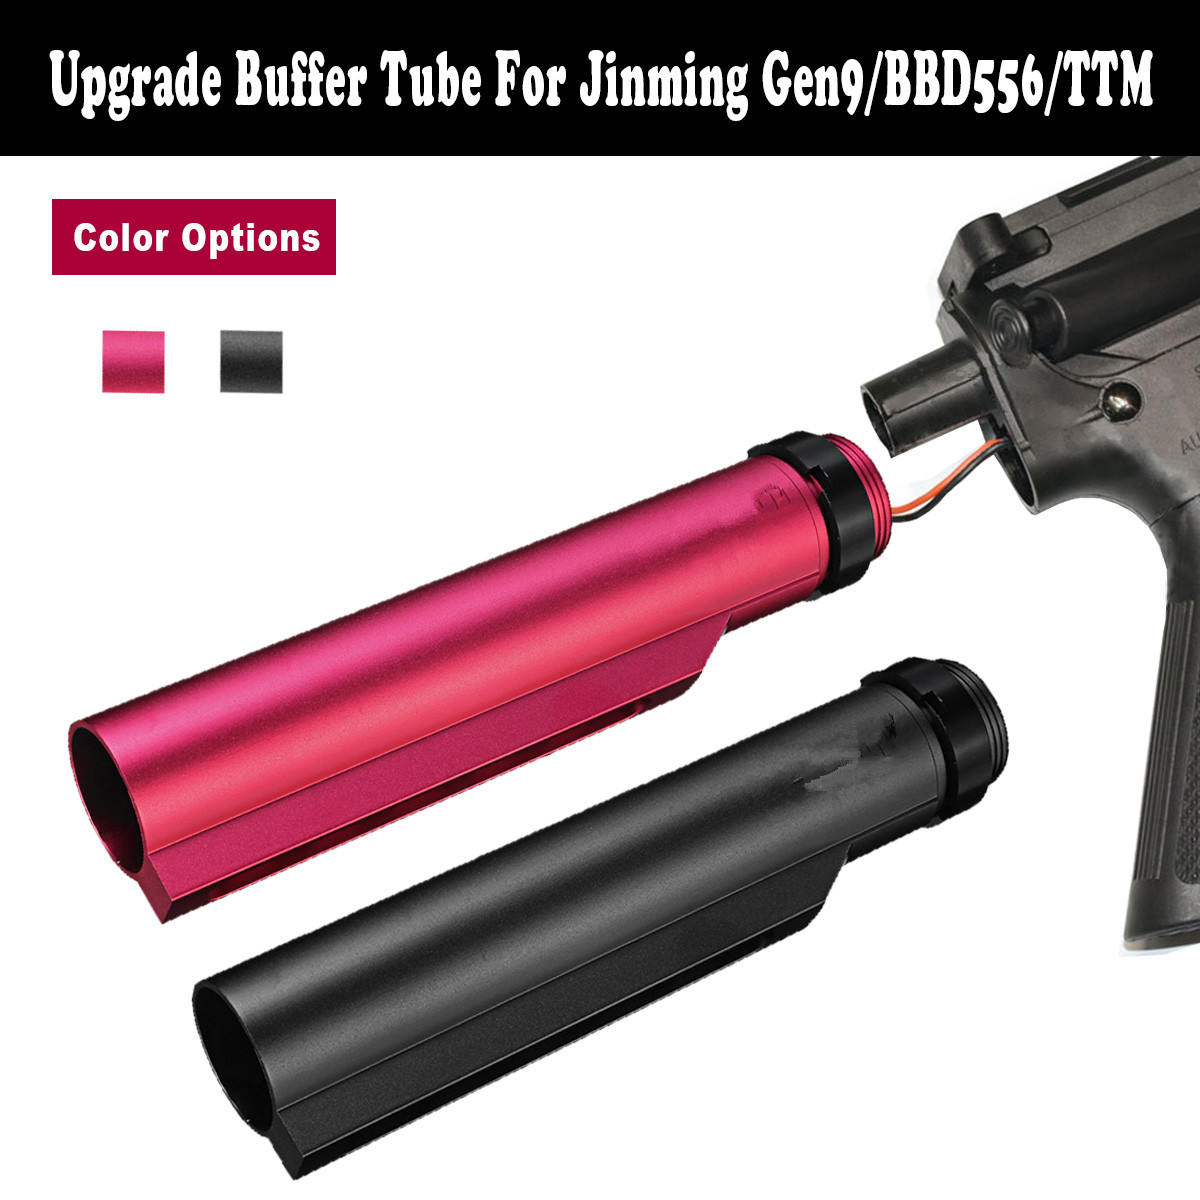 Upgrade Metal Buffer Tube For Jinming Gen9/BBD556/TTM Water Gel Ball Blasters Toy Guns Replacement Accessories